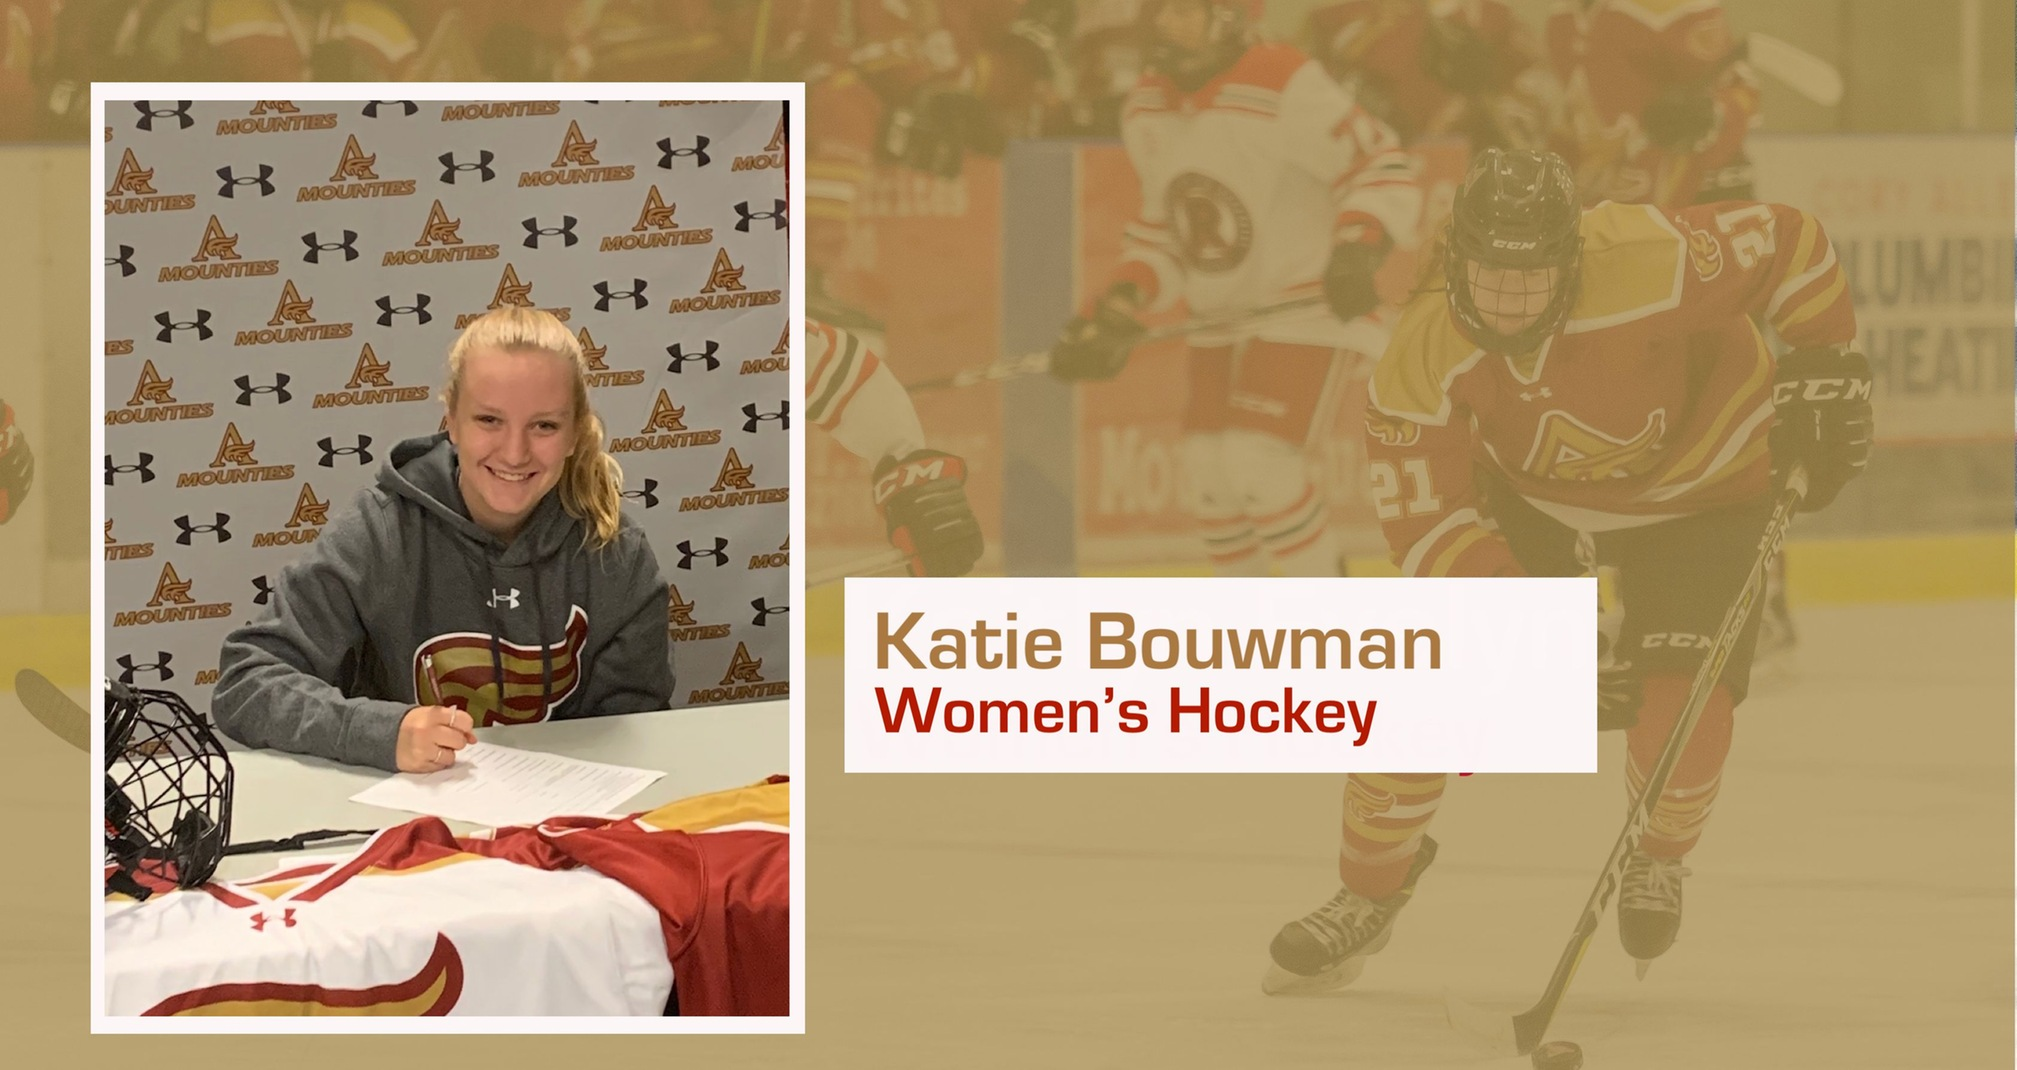 Mounties women's hockey add Katie Bouwman